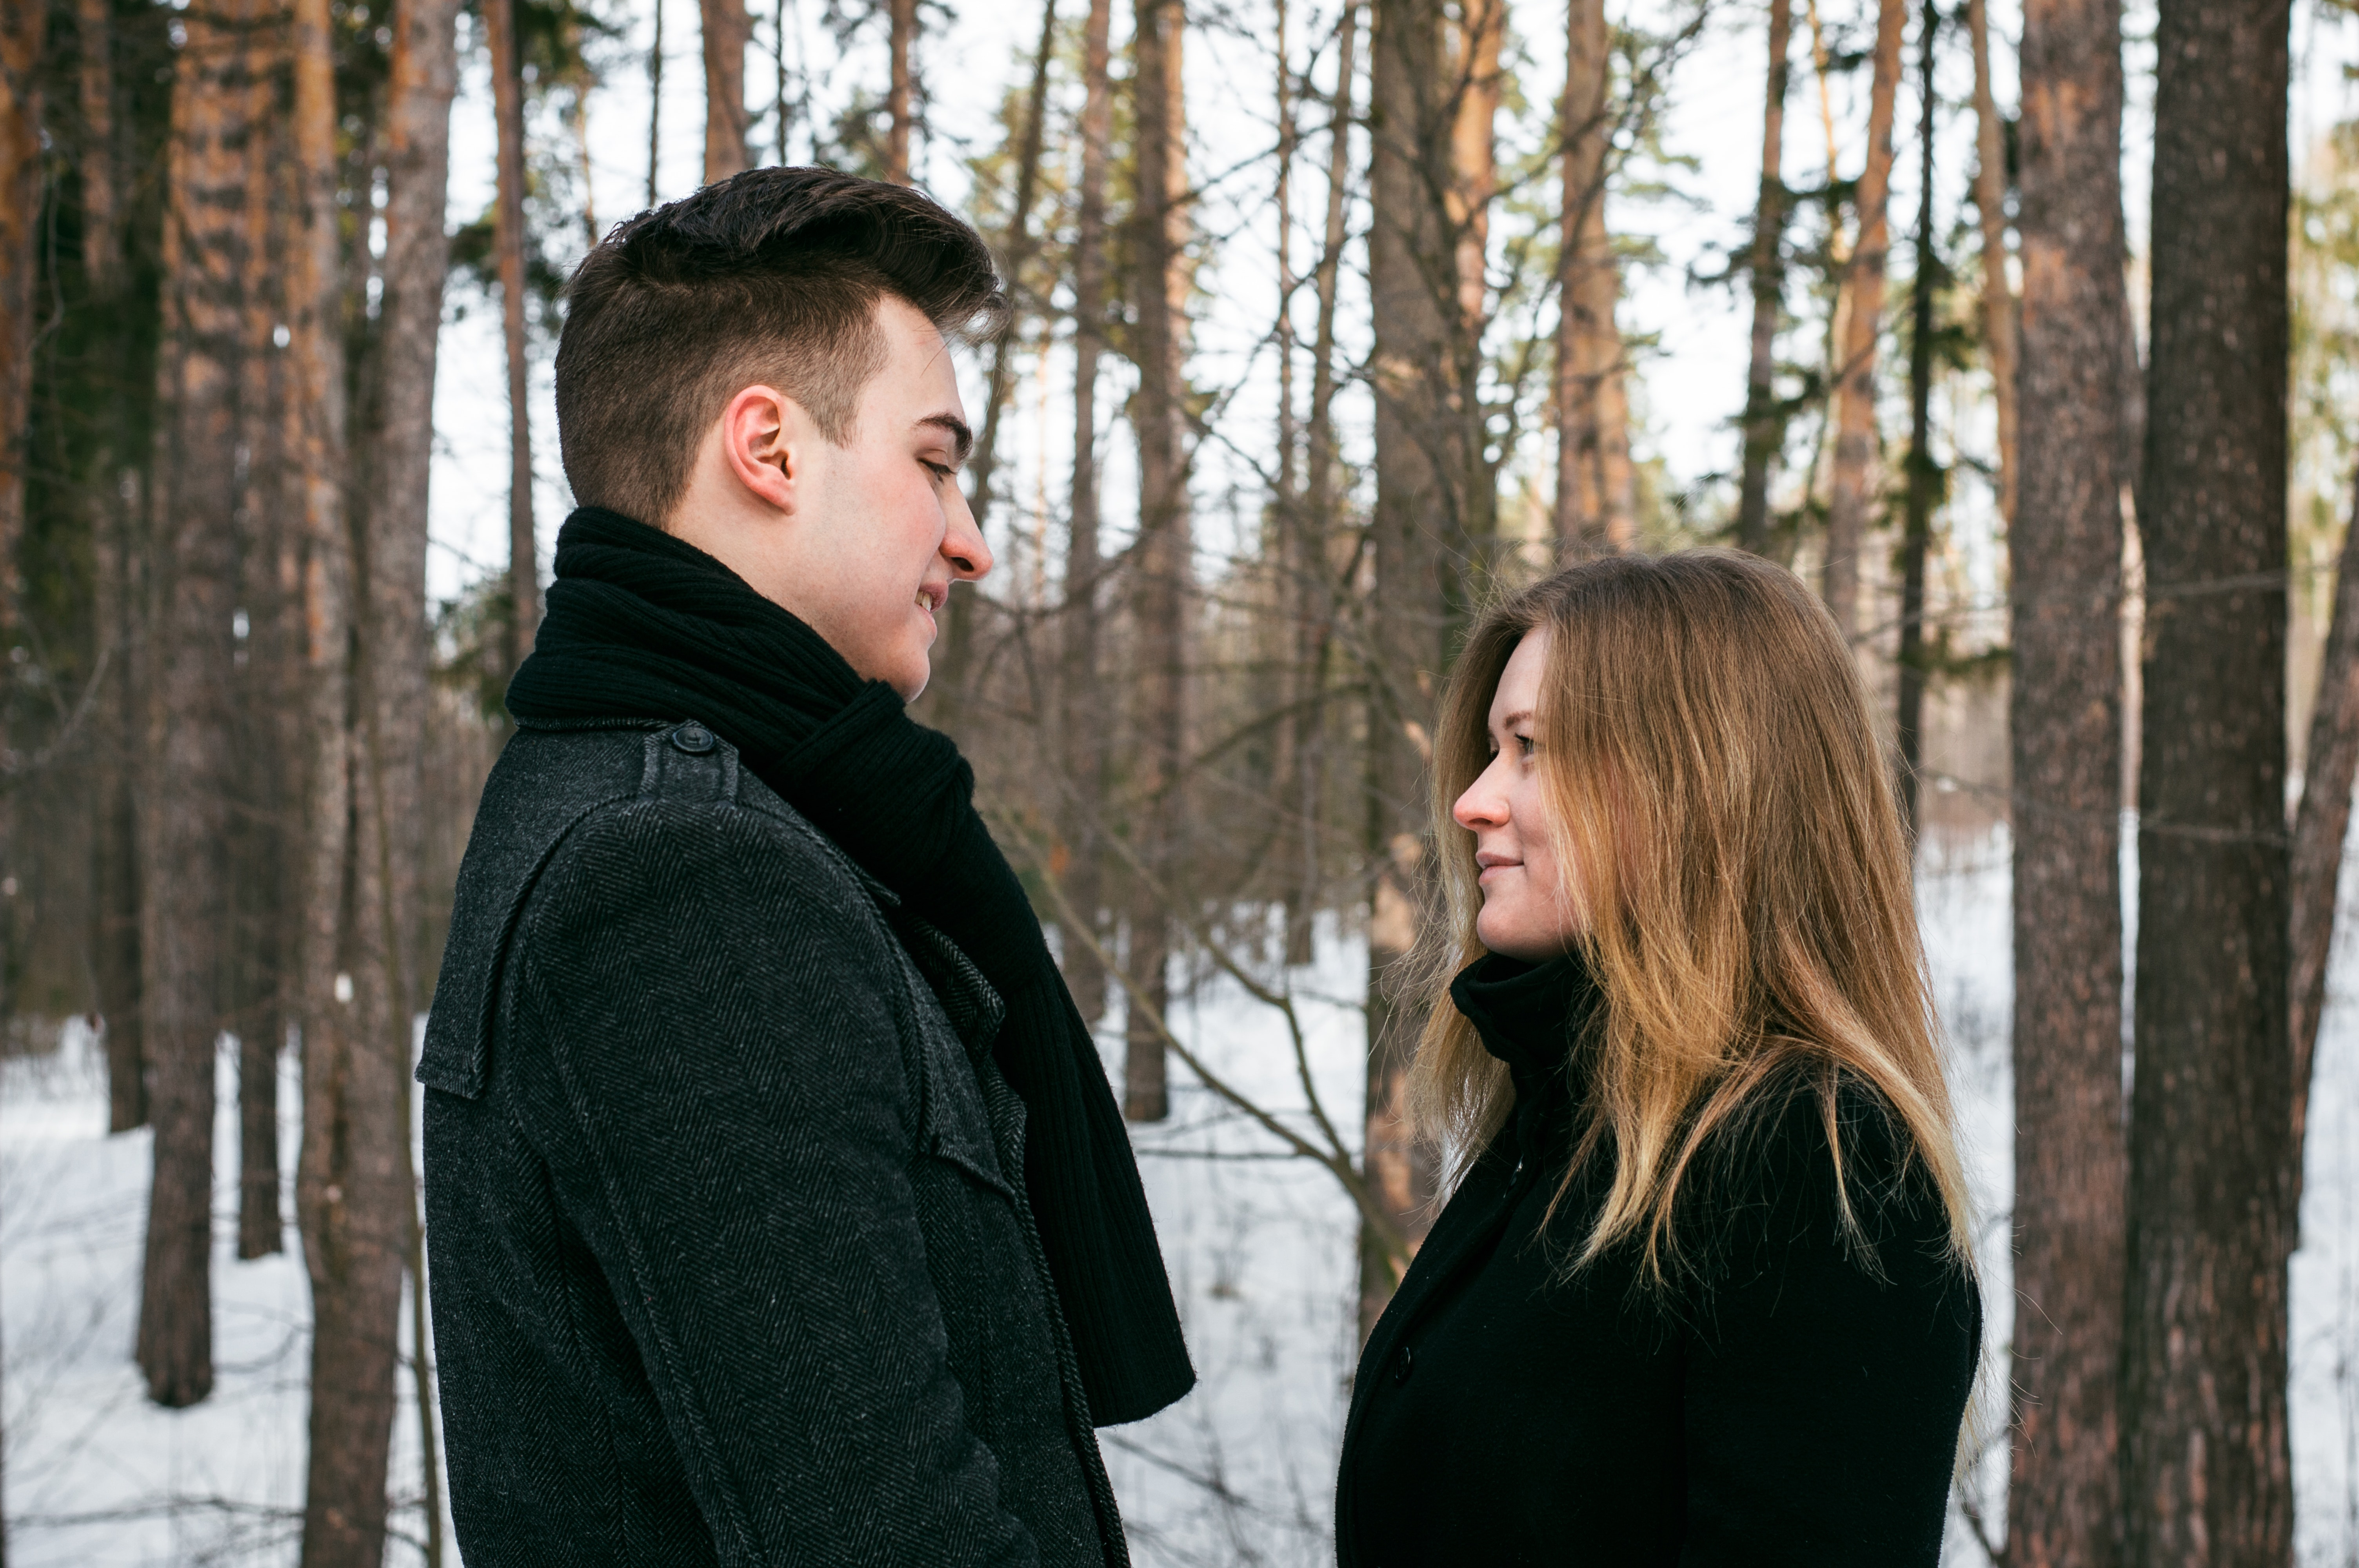 Man and woman wearing black coats standing near snow-covered trees photo